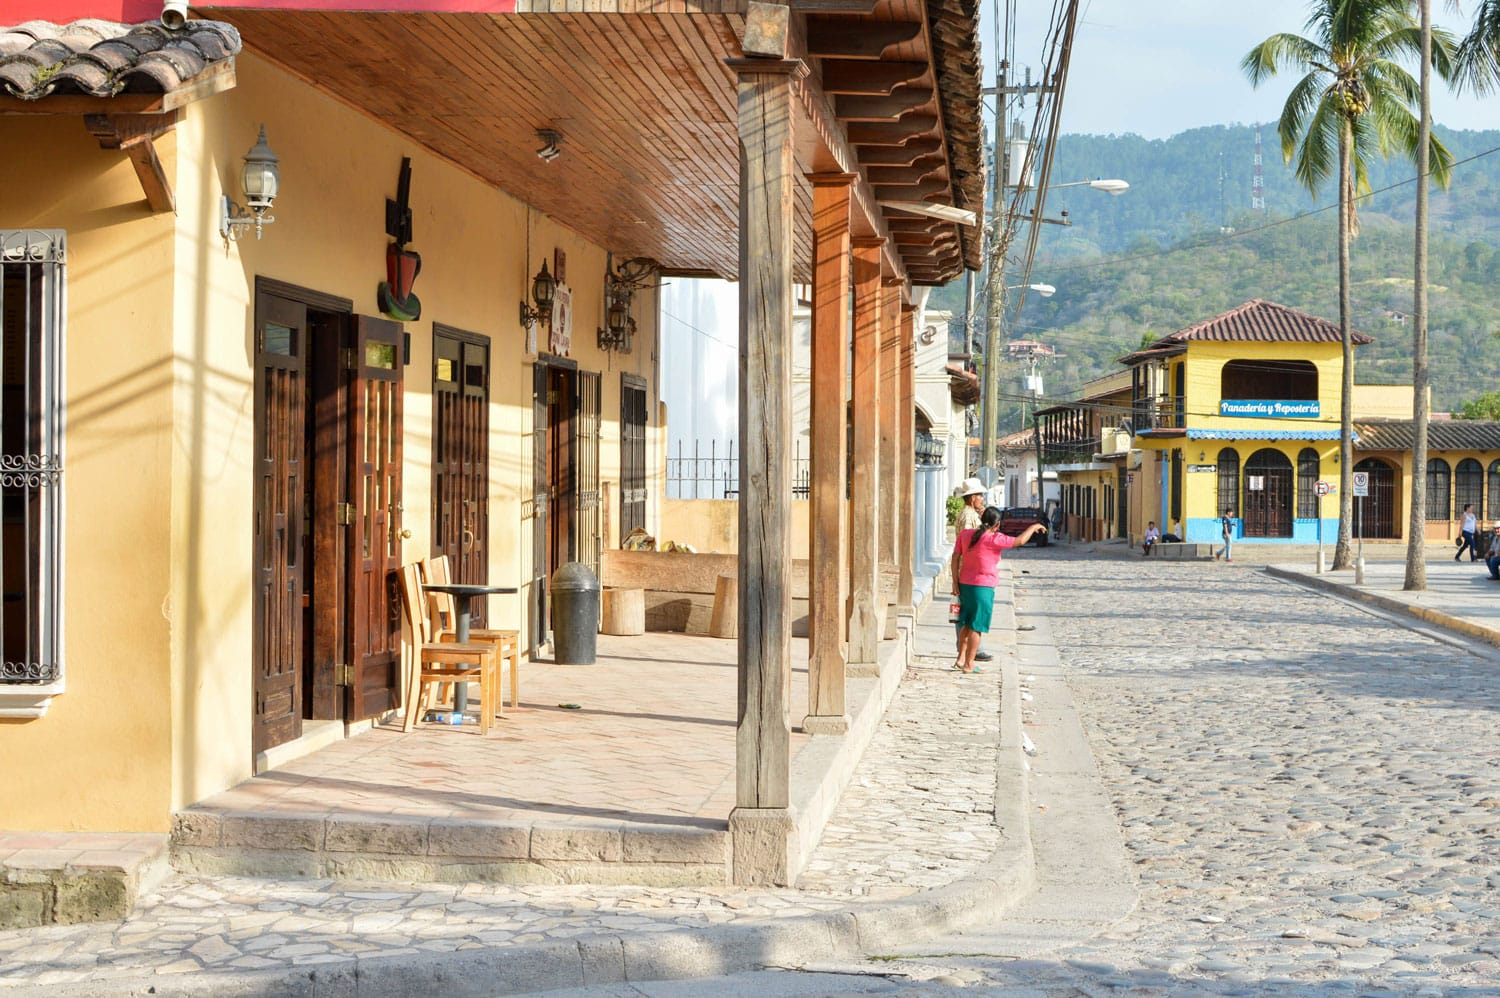 The view of the main plaza of a small colonial town of Copan Ruinas in Honduras, Central America